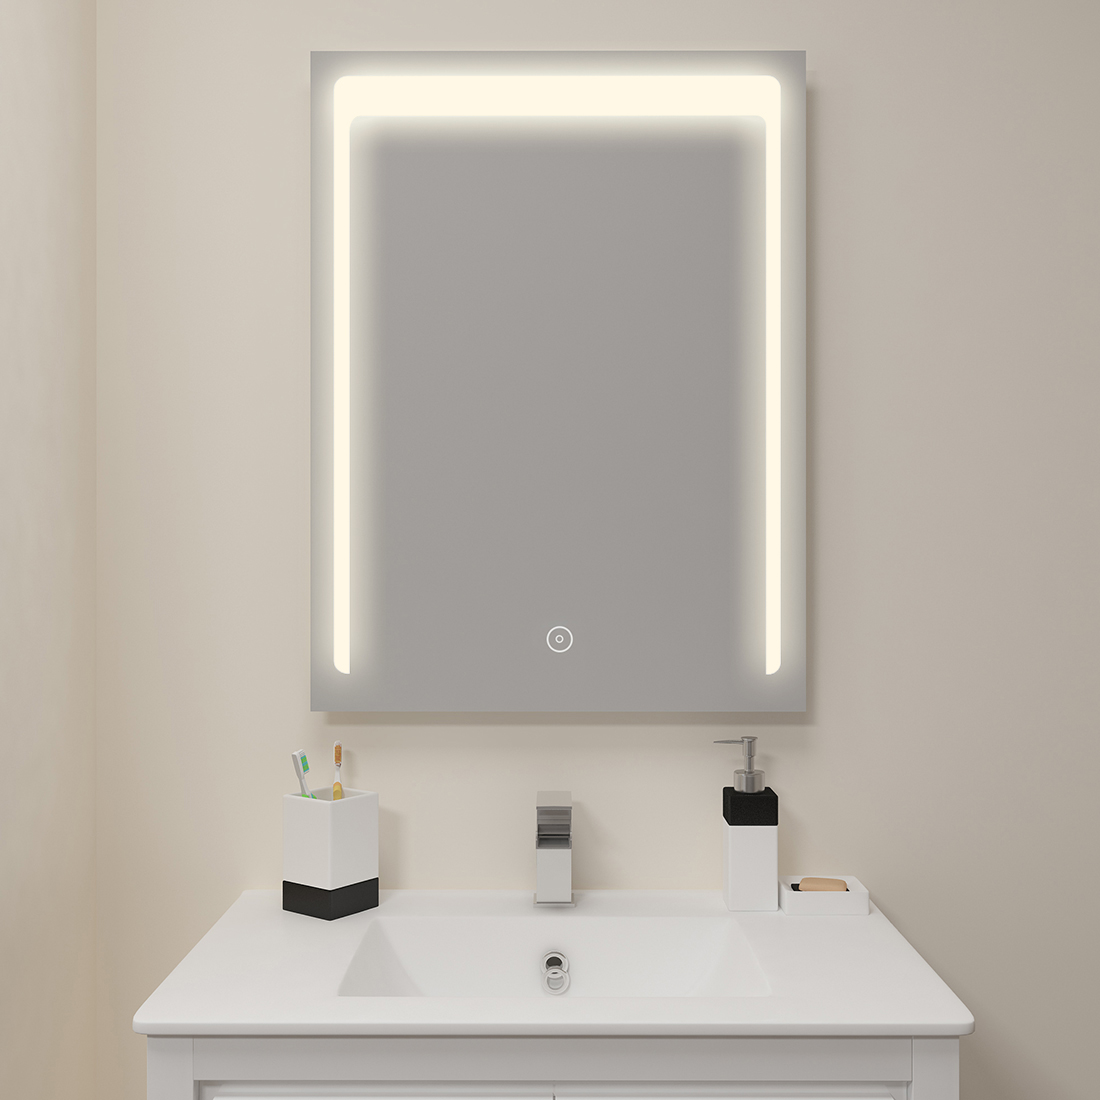 """Details about SUNNY SHOWER LED Lighted Bathroom Vanity Mirror Touch Button  24""""x32"""" fogless"""